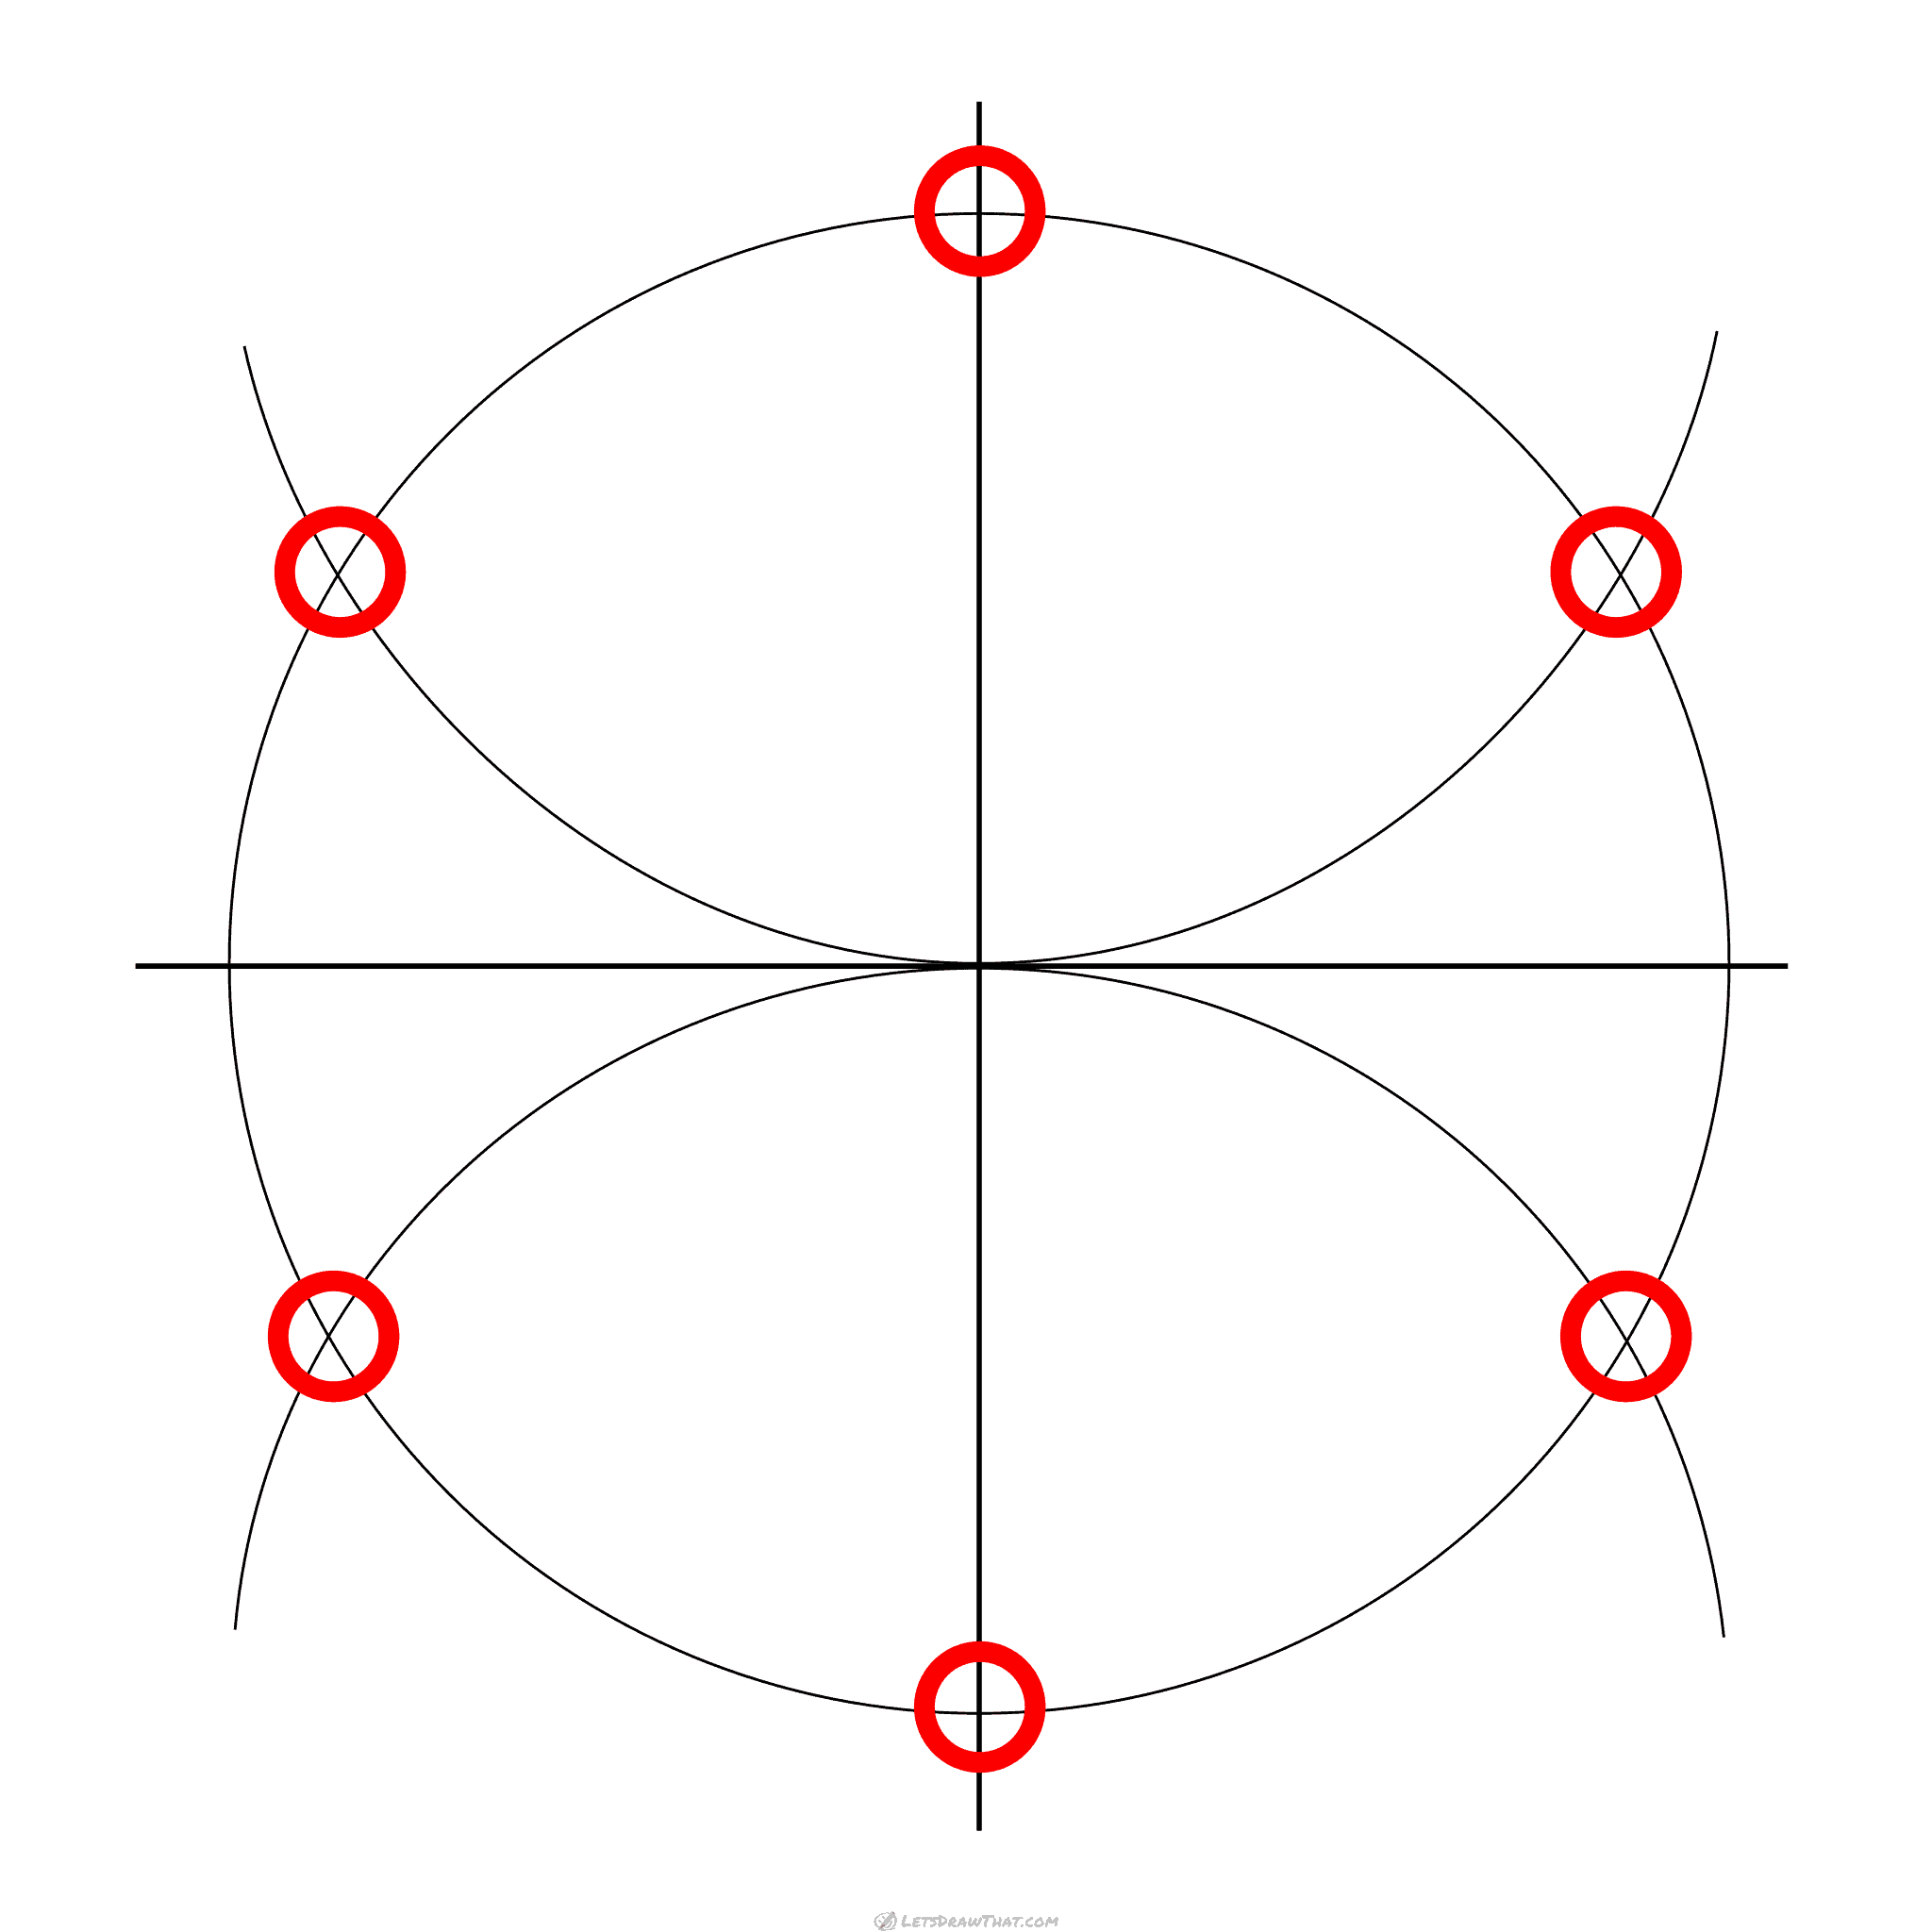 Connect the marked points to draw a hexagon